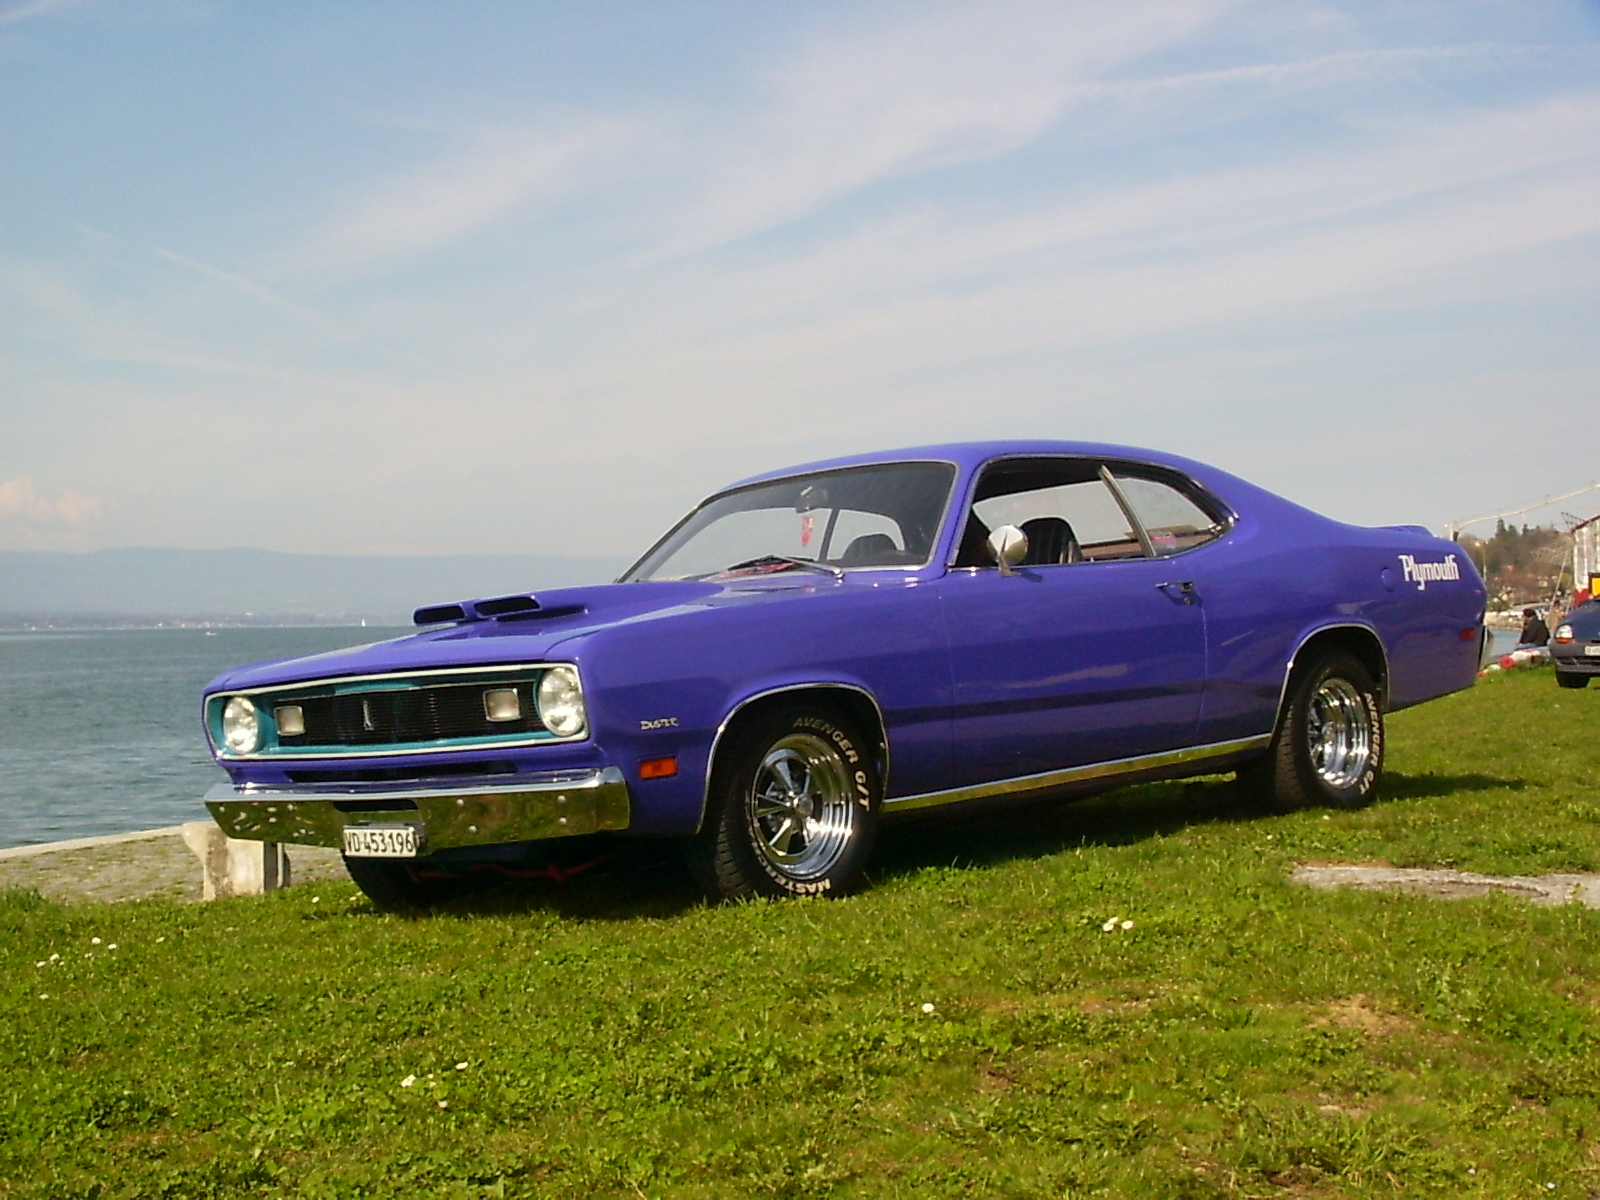 Plymouth Duster Sport coupé, 1971, V8 5.2l, 318 Cubic inches